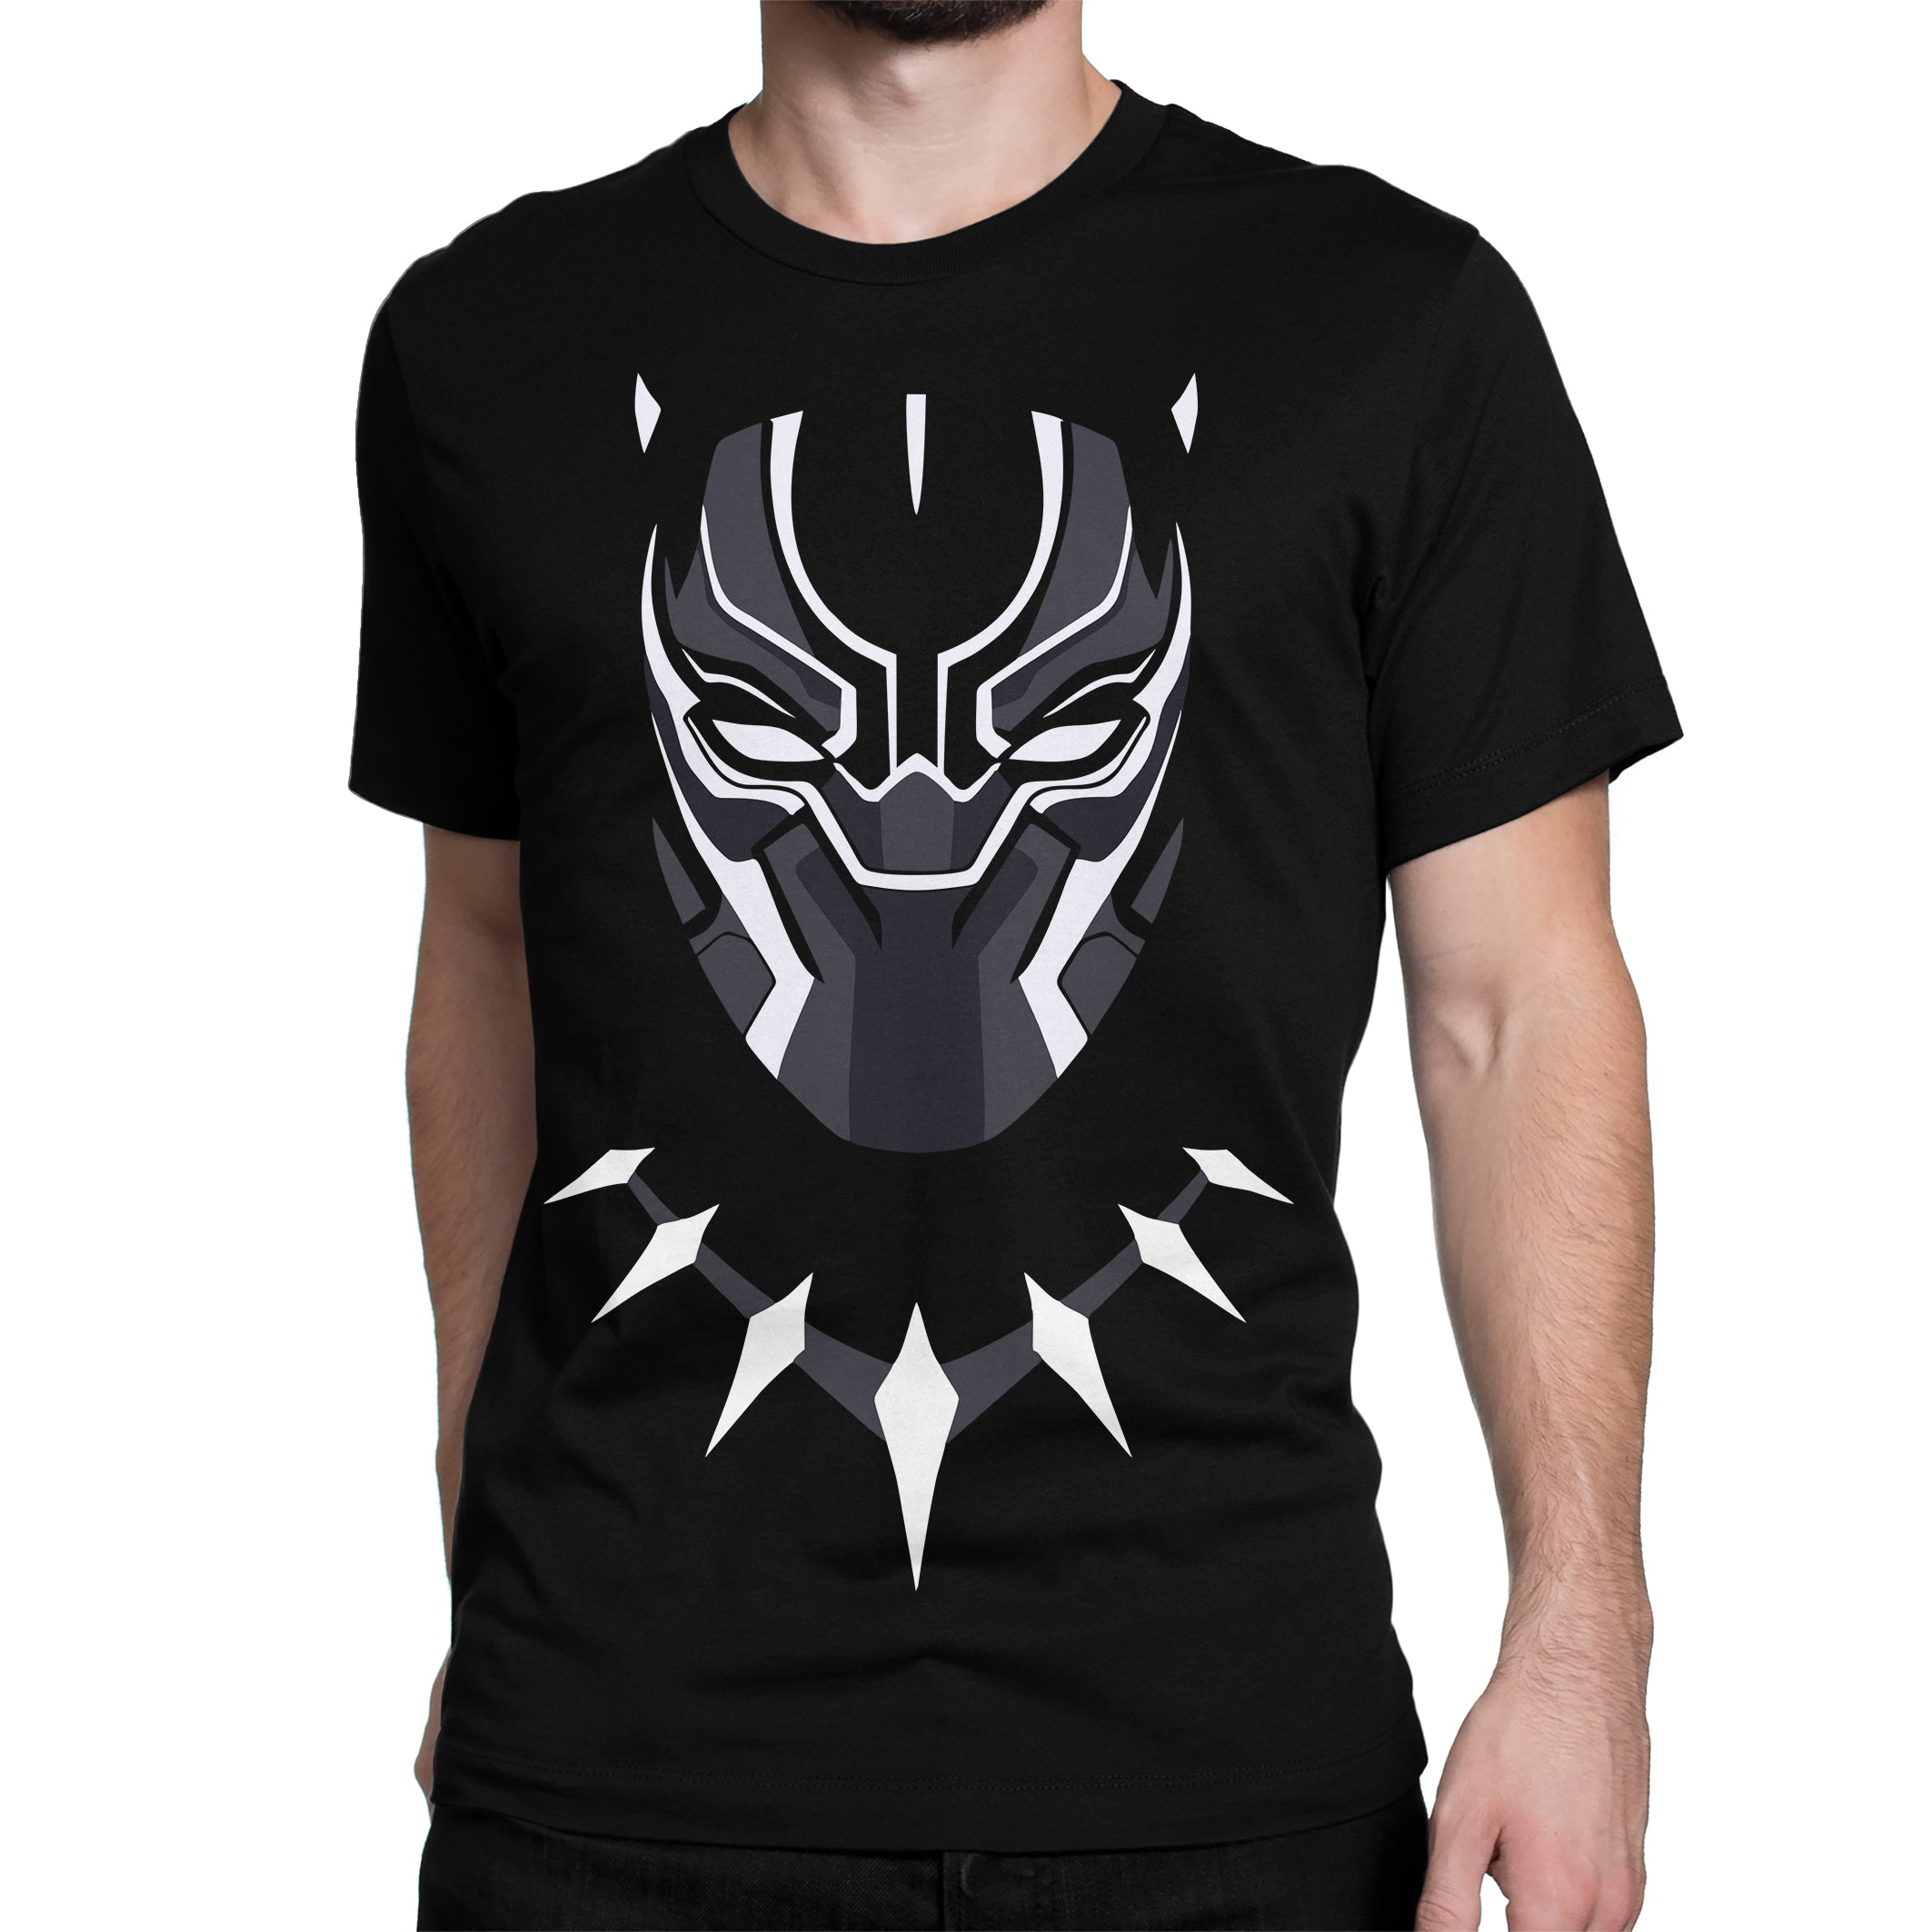 d1aa4d8a5b ... The Black Panther Tchalla Marvel Black panther T Shirt In India by  Silly punter